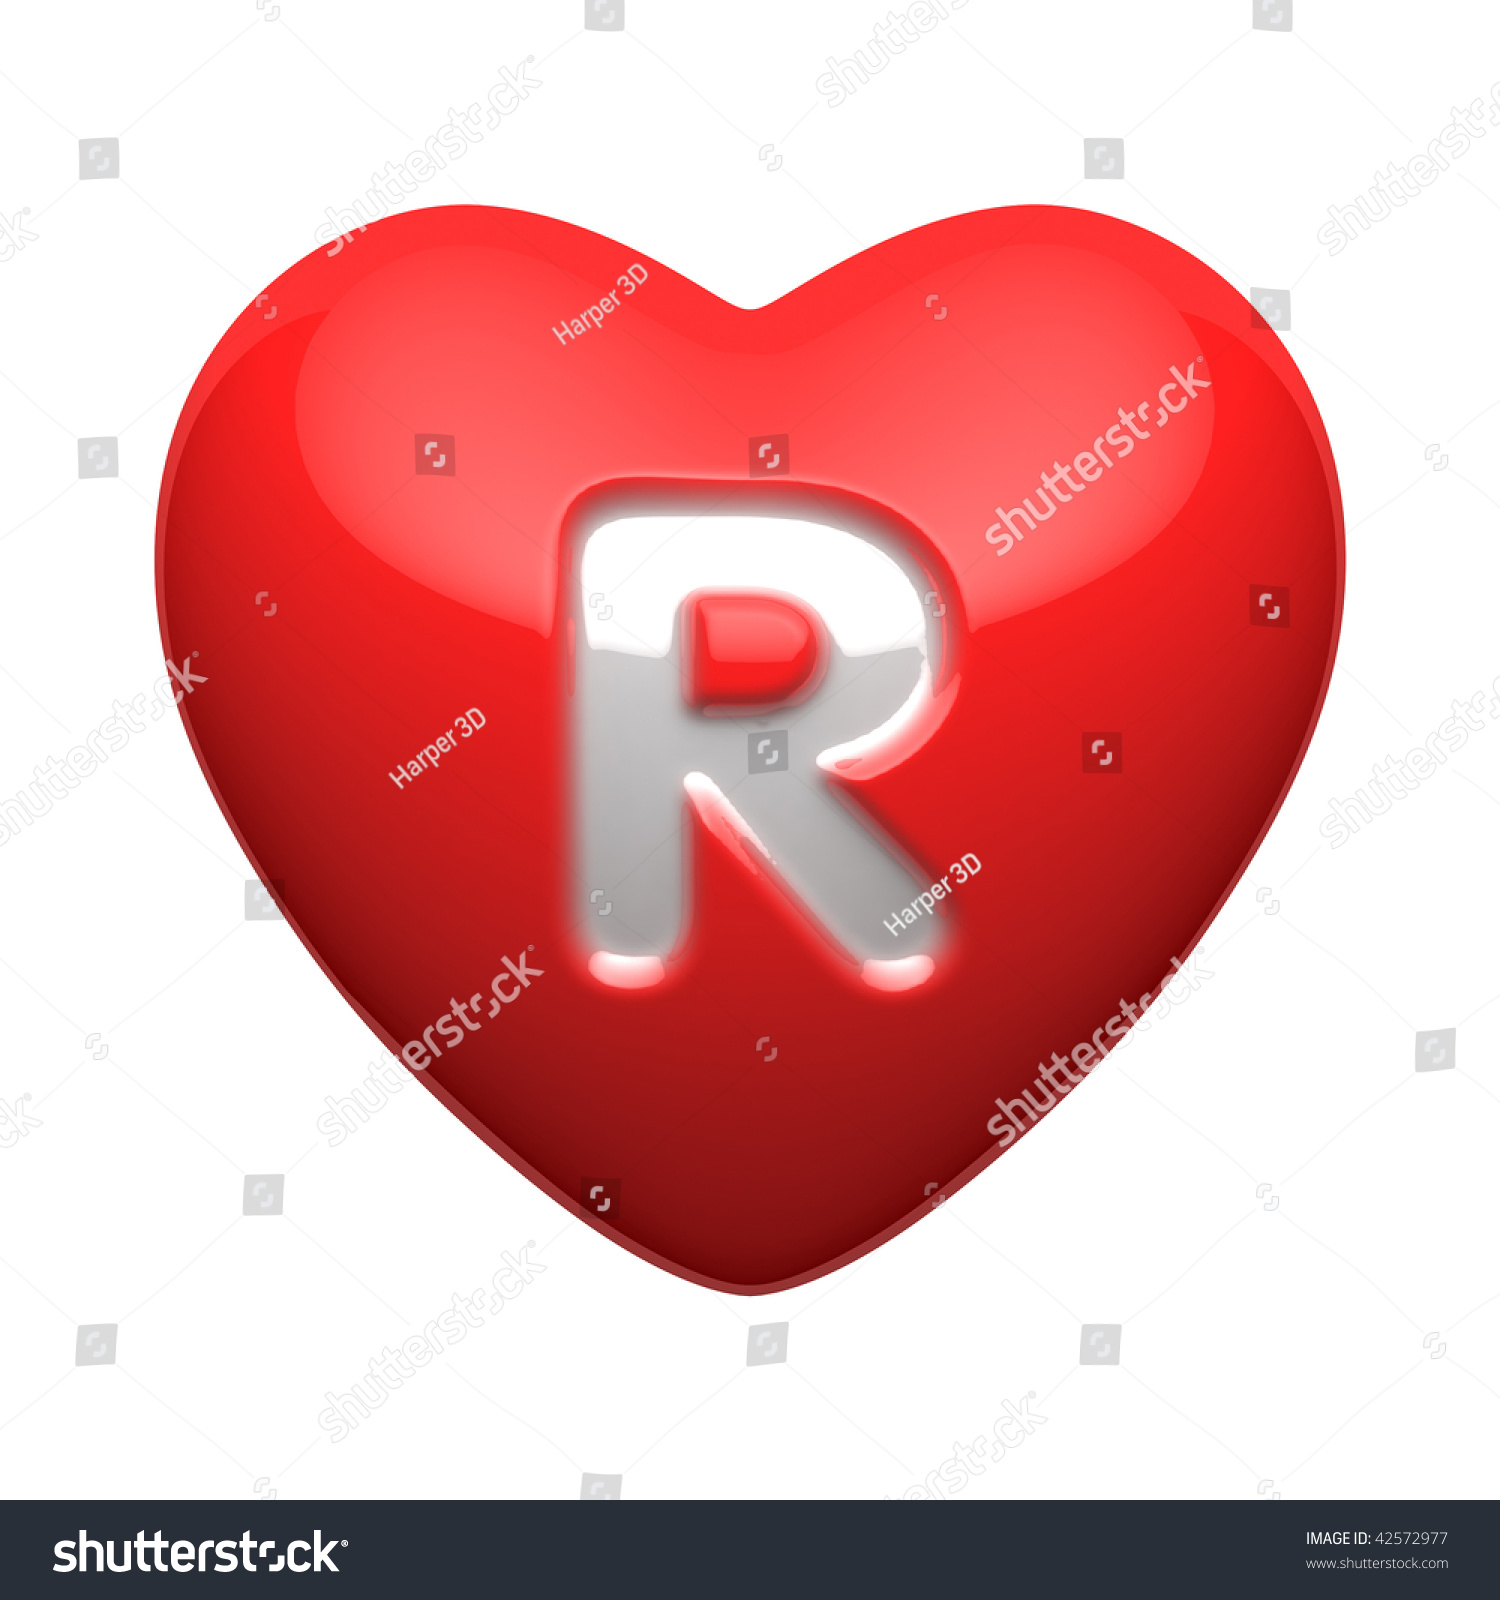 Letter R Alphabet Hearts There Clipping Stock Illustration ...